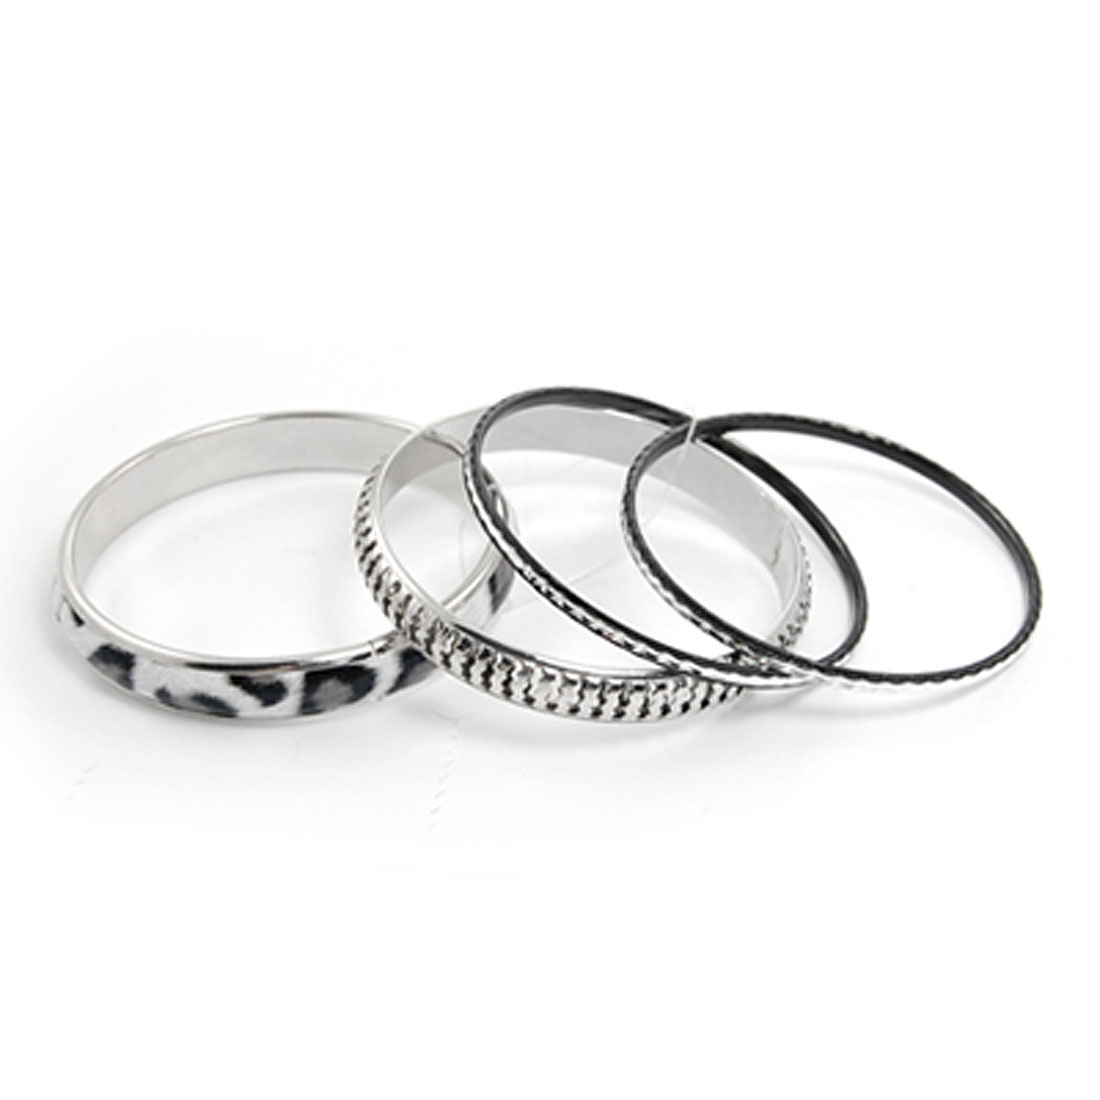 4 in 1 Leopard Pattern Metal Hoop Bracelet Set for Ladies